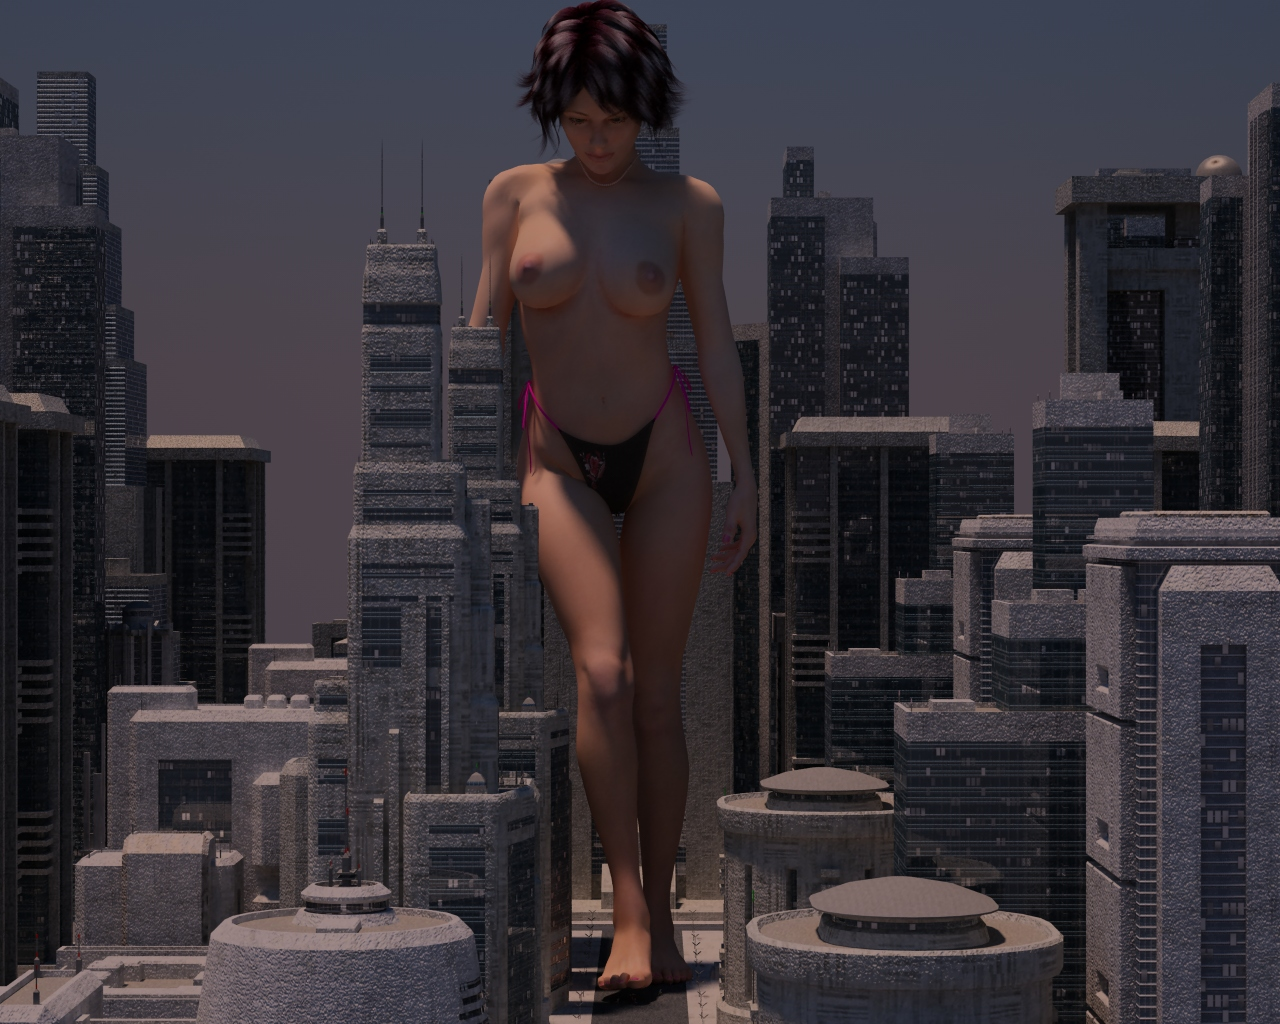 152402 - barefoot breasts chapter_7 city crush downward_angle jessi jessi_and_vicky poser tiny_mk